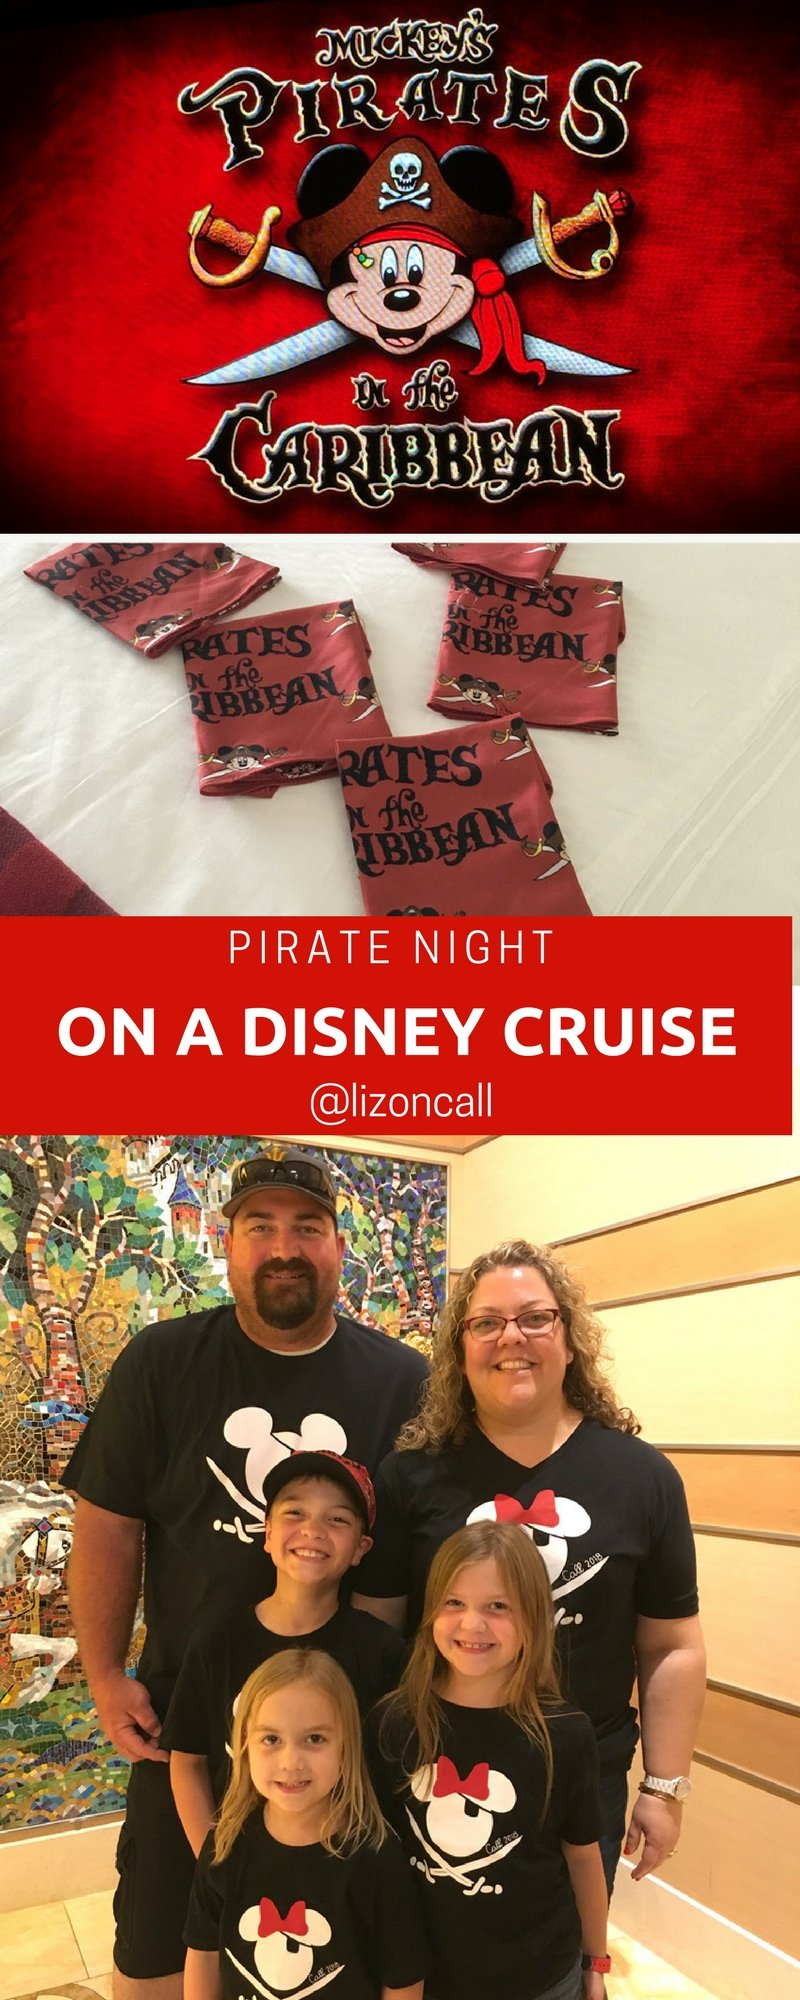 Download the printable packing list using the link below. Once the link opens, right click to save to your computer and then print. Walt Disney World and Disney Cruise Packing List. #disneycruise #piratenight #disneycruiseline #packinglist